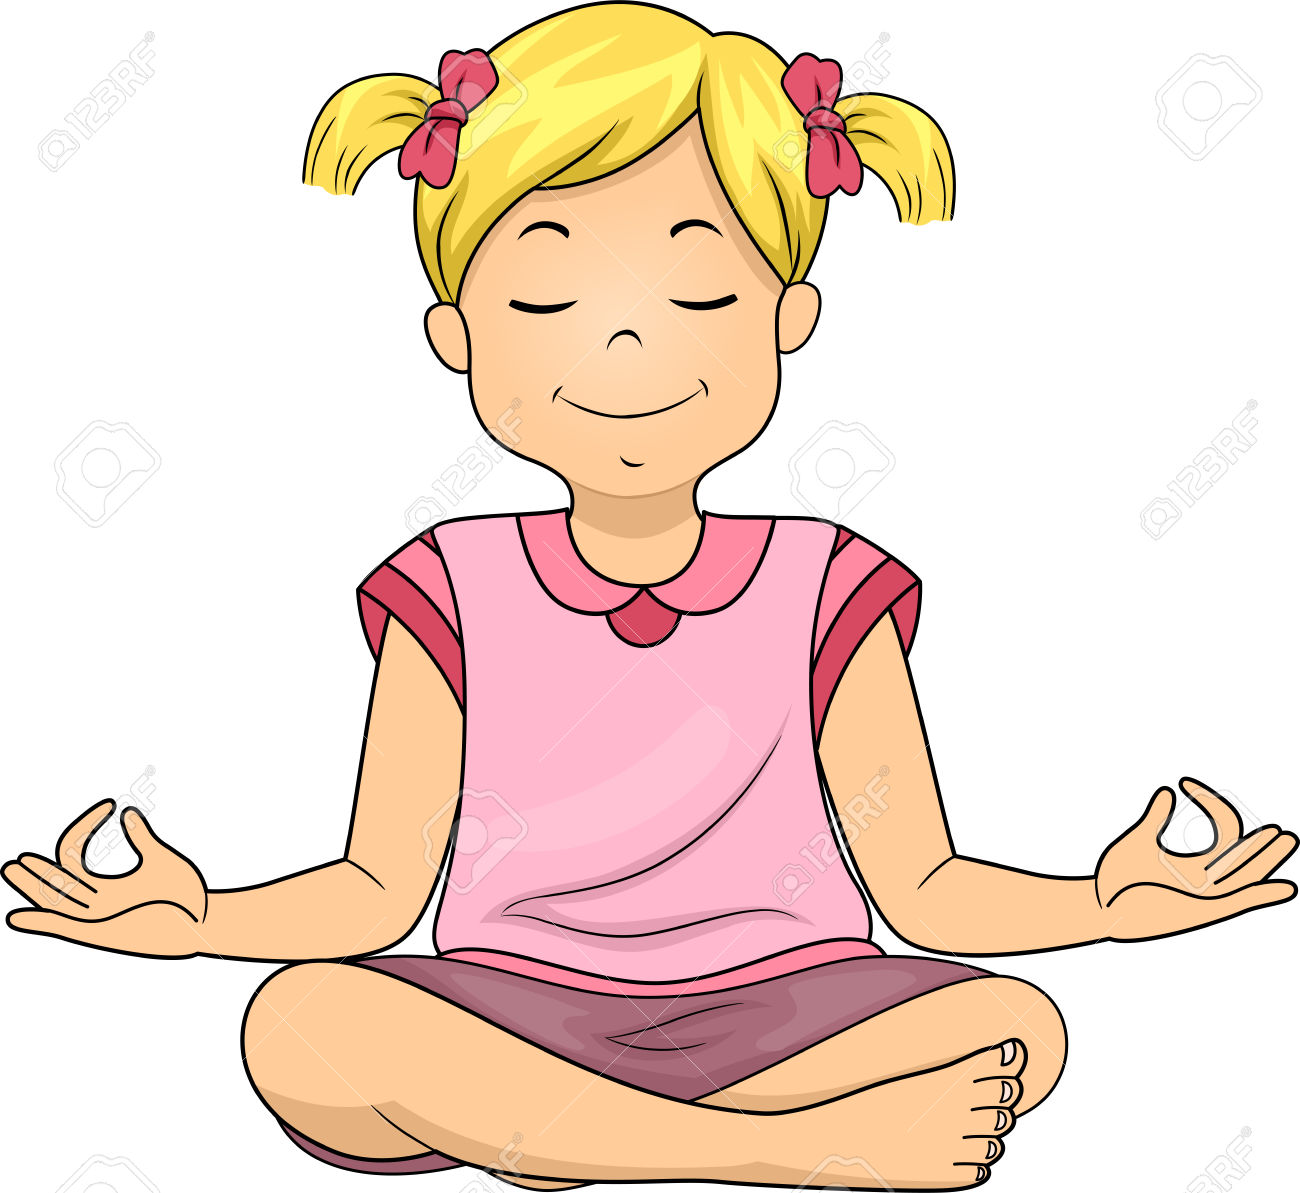 Woman Sitting Cross Legged Body Language Clipart 20 Free Cliparts  Download Images On -2914